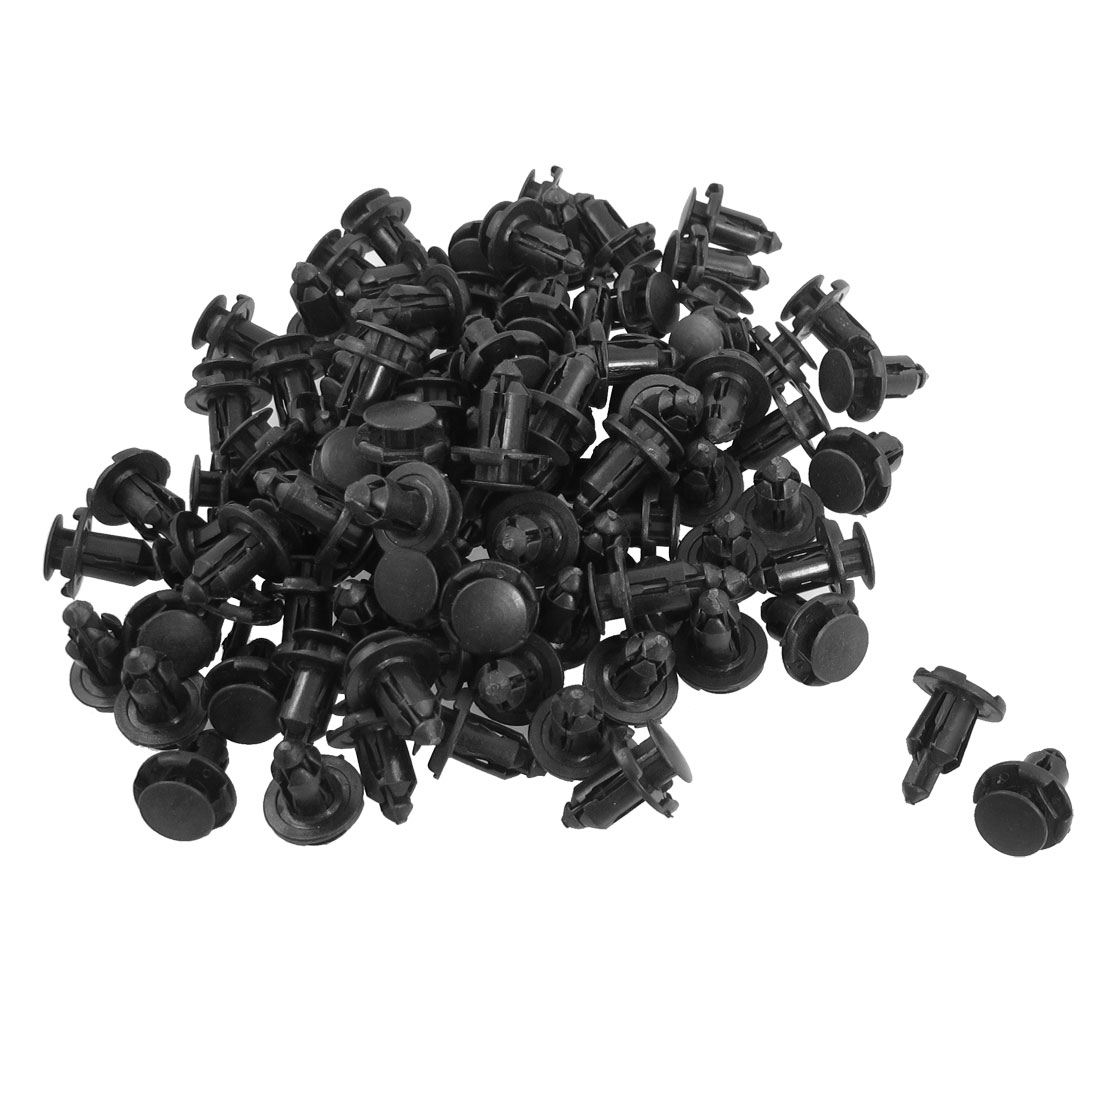 100 Pcs Plastic Rivets Retainer Clip 18 x 20 x 8.5mm for Car Bumper Fender